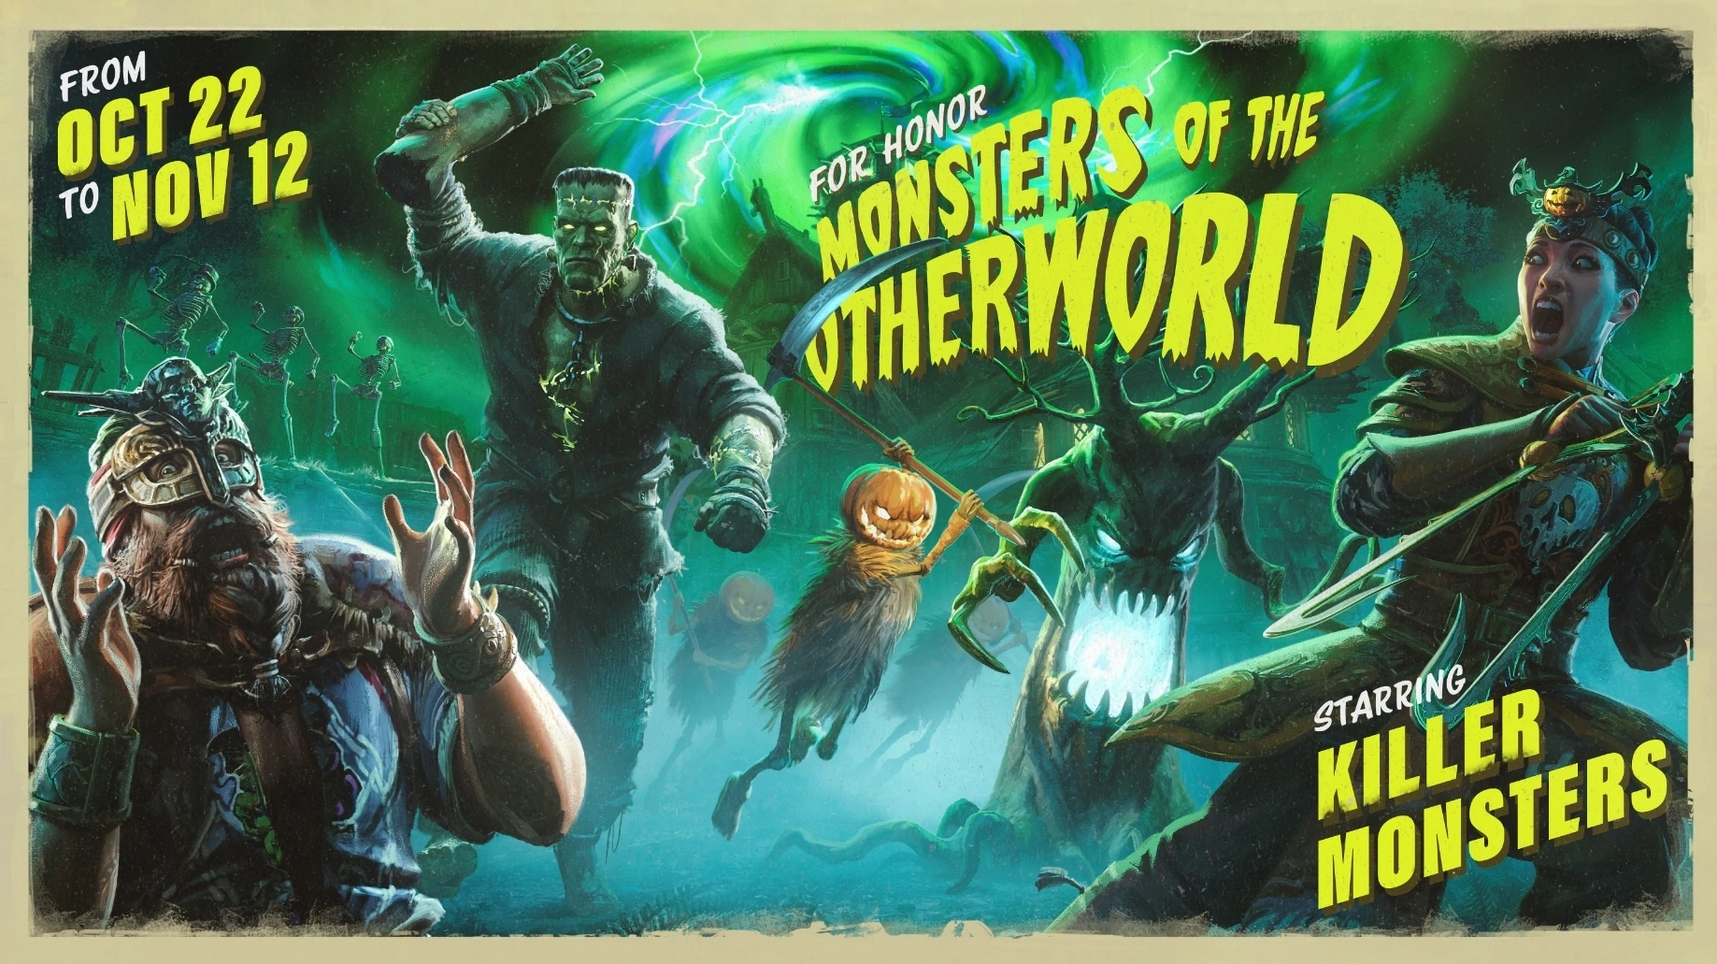 MONSTERS OF THE OTHERWORLD